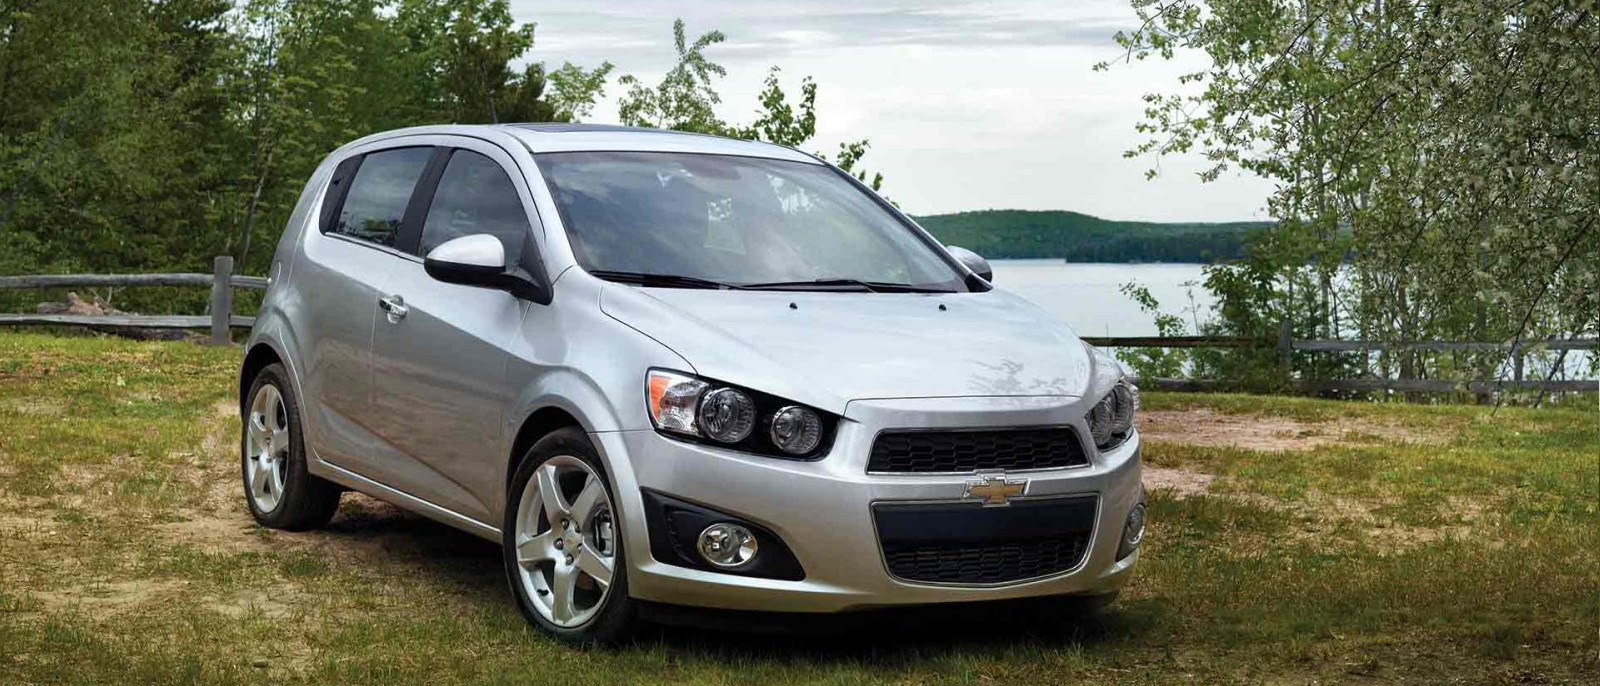 All Chevy 2013 chevy sonic mpg : 2014 Chevy Sonic Florence KY Cincinnati OH | Tom Gill Chevrolet